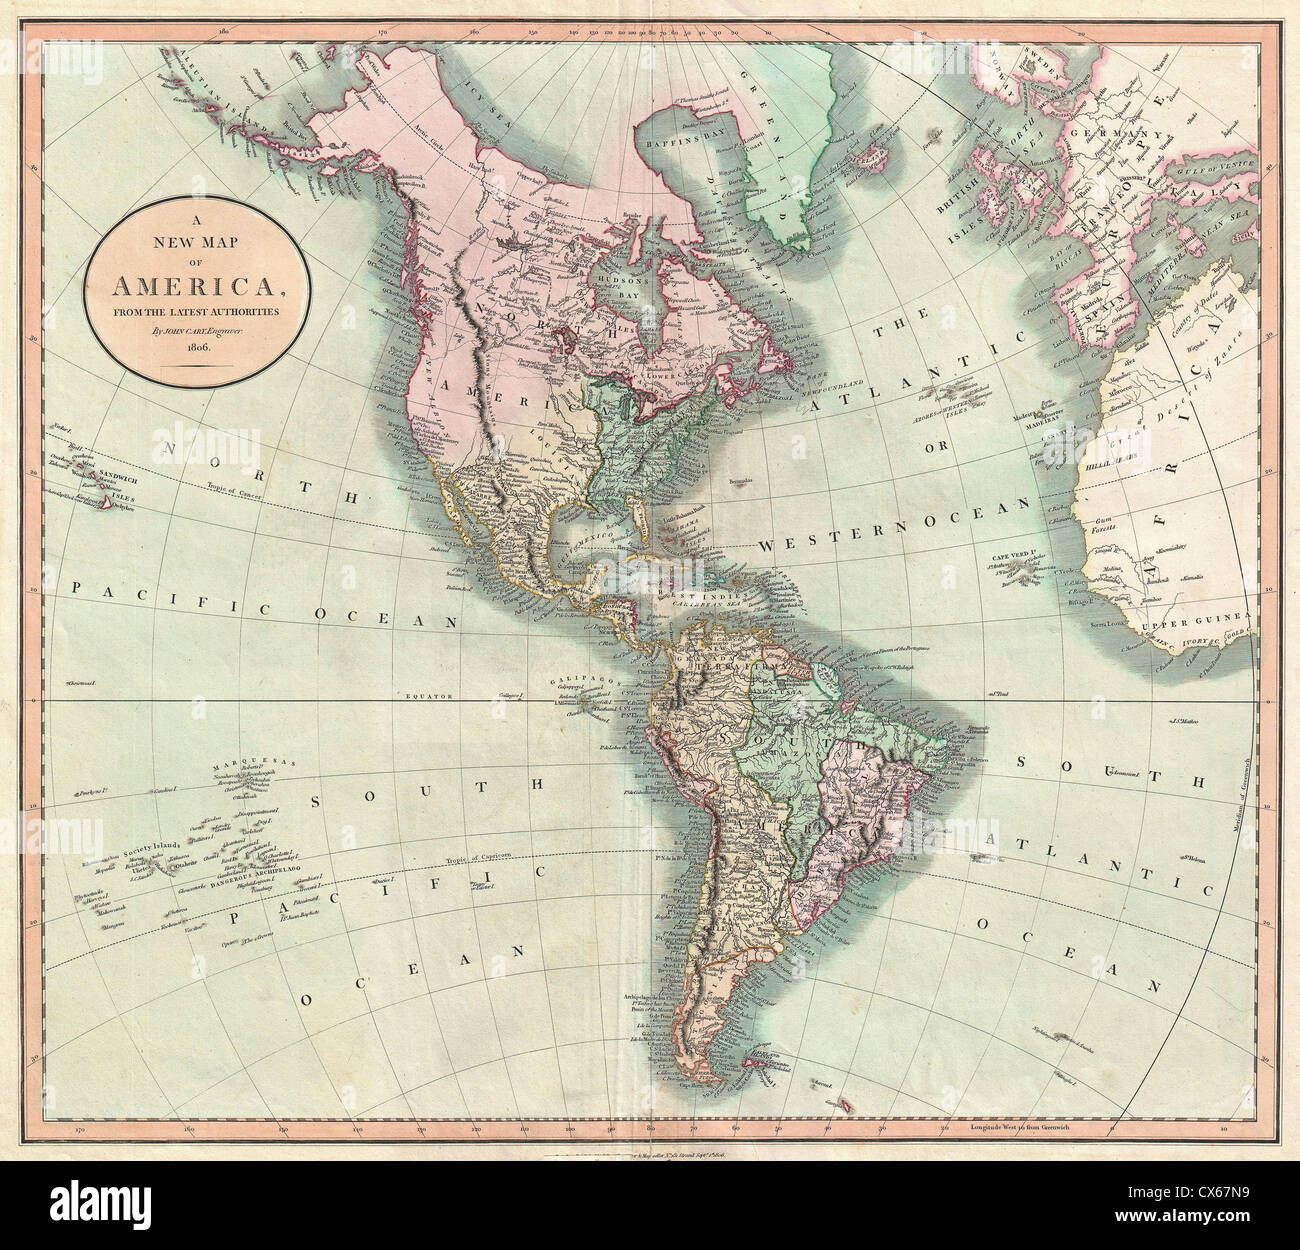 South hemisphere map stock photos south hemisphere map stock 1806 cary map of the western hemisphere north america and south america stock gumiabroncs Images